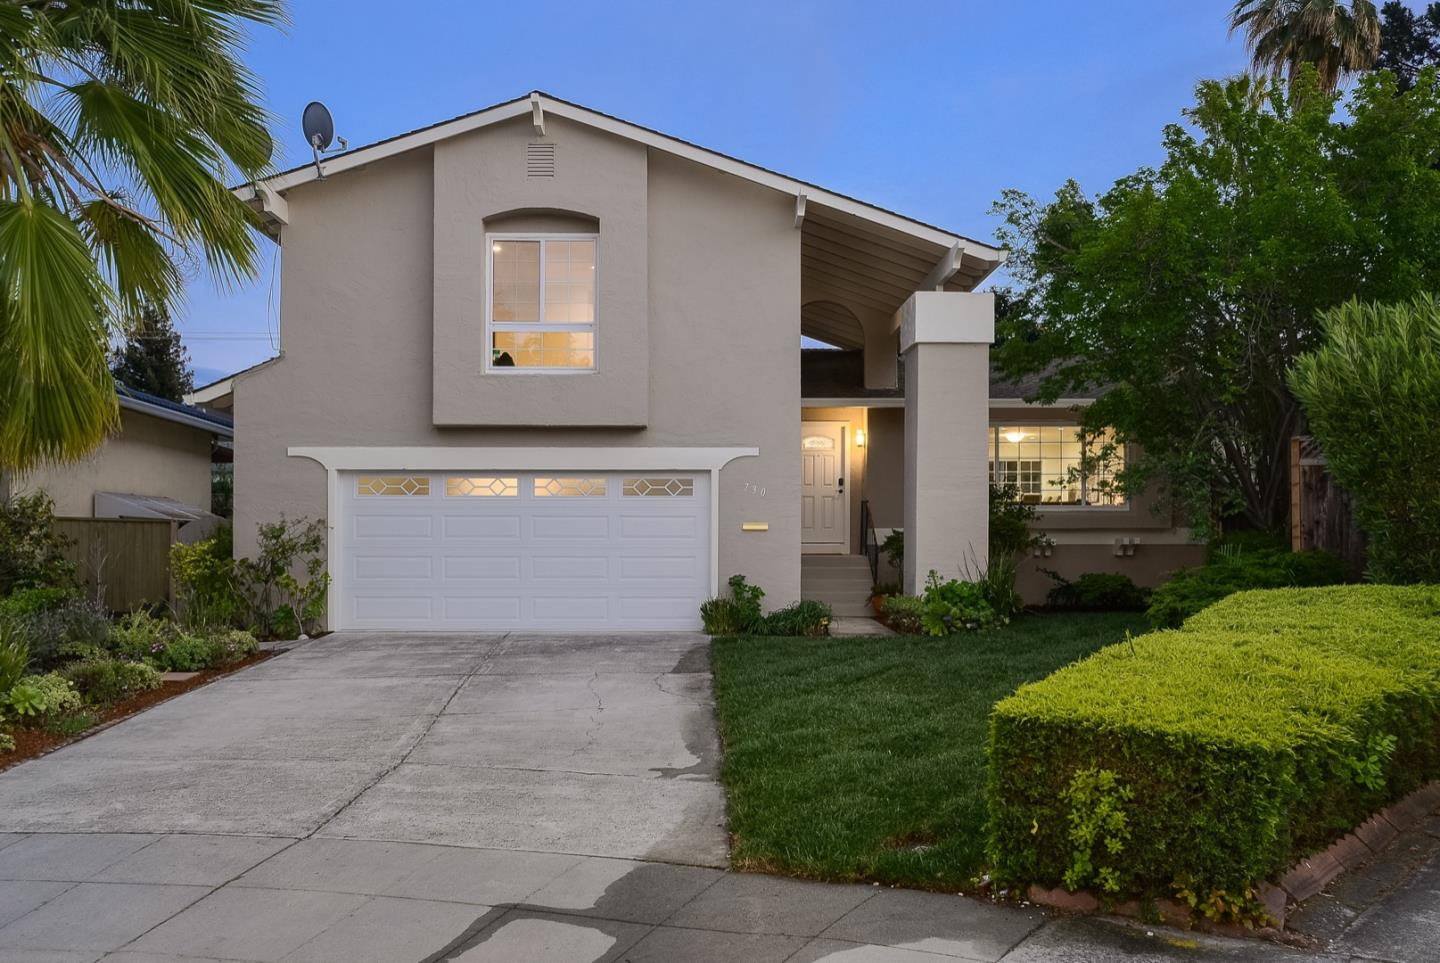 Detail Gallery Image 1 of 1 For 730 Calico Ct, Sunnyvale, CA 94086 - 4 Beds | 2/1 Baths